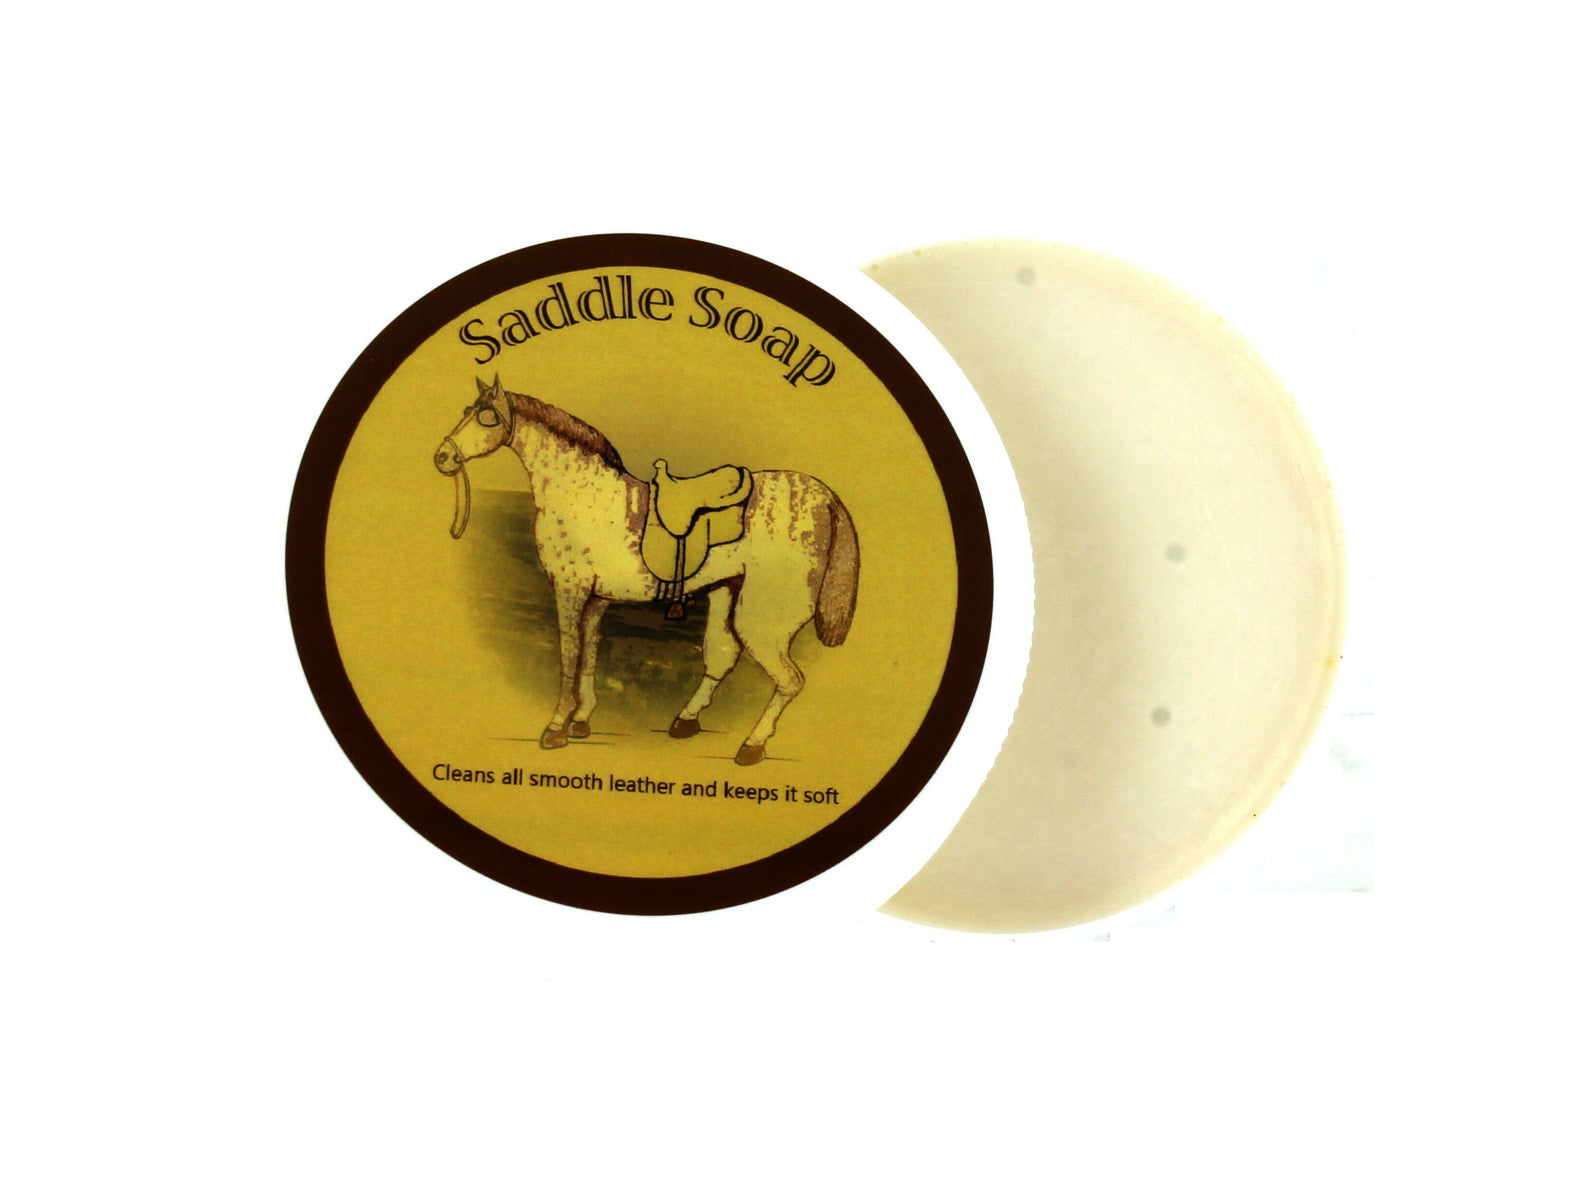 Saddle Soap Open View